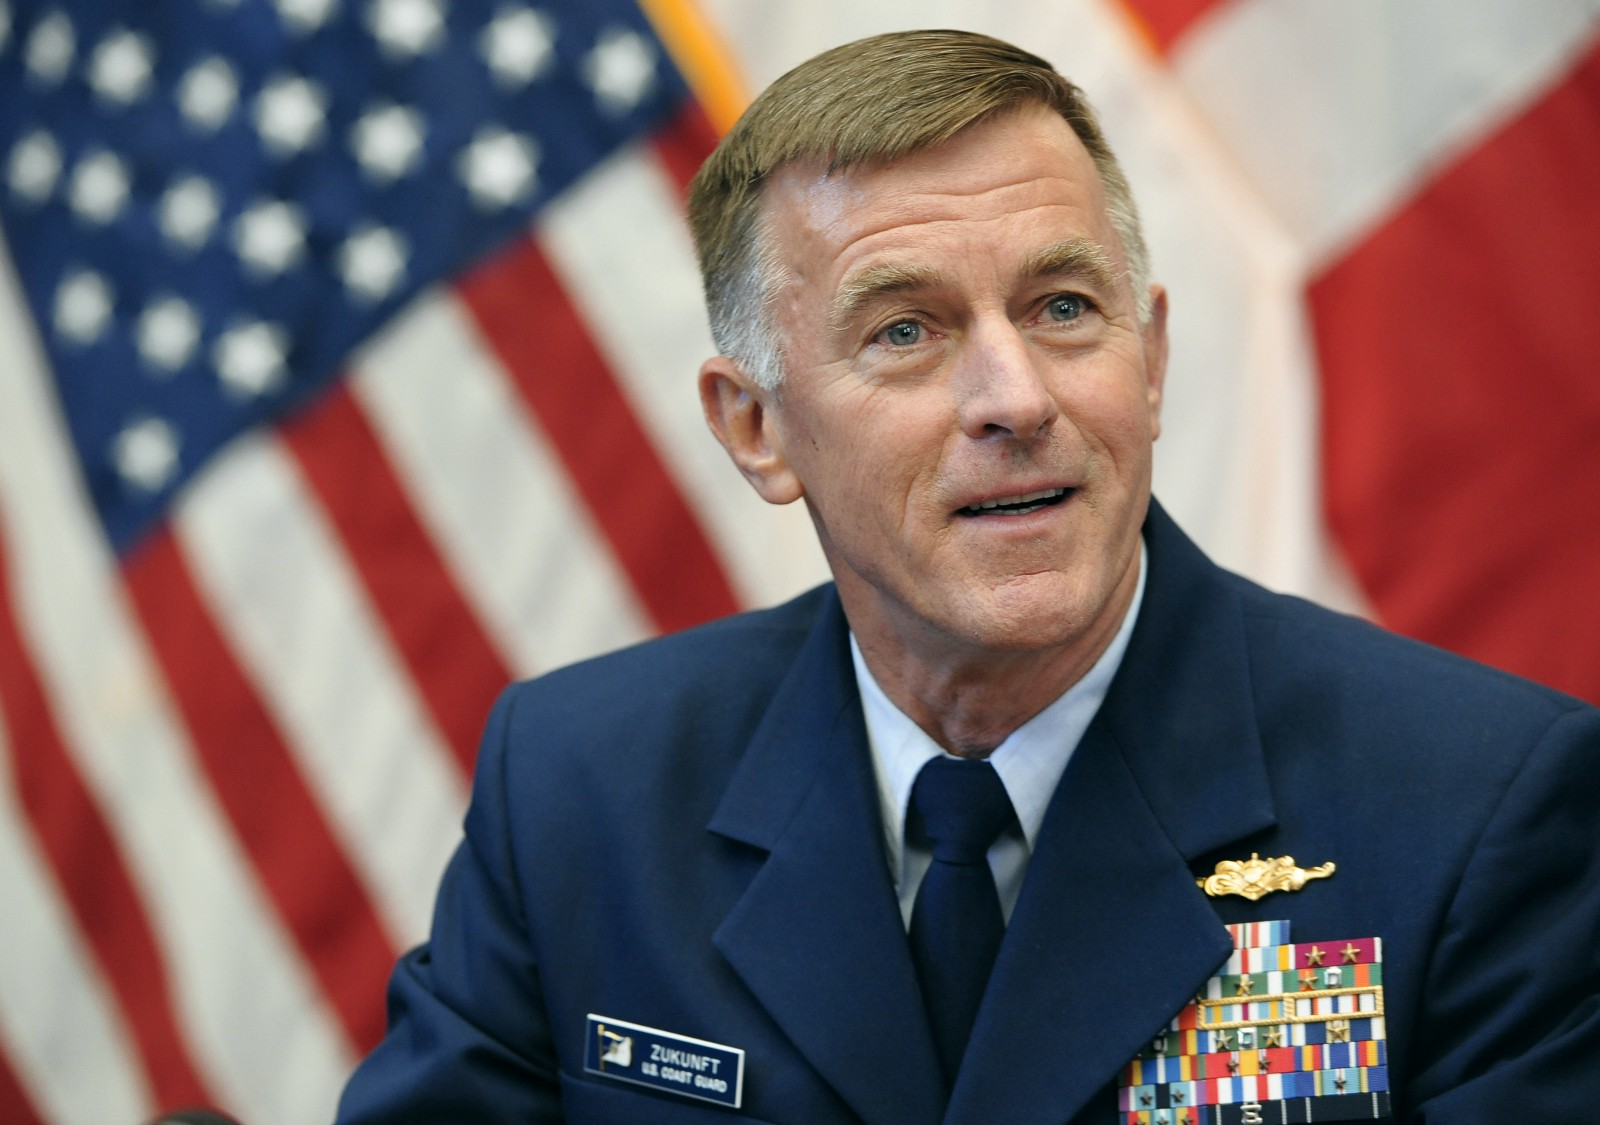 Coast Guard Still Supports Transgender Troops, Commandant Says